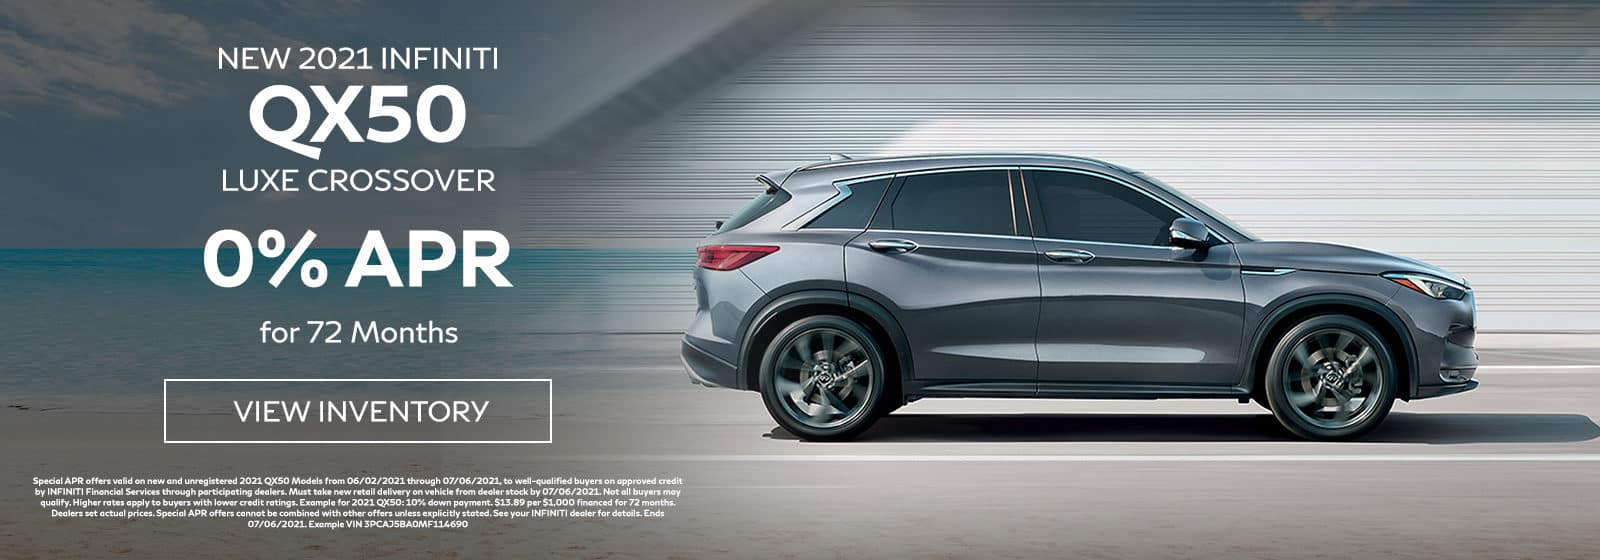 QX50 - 2021 INFINITI QX50 LUXE CROSSOVER, 0% APR for 72 Months. Offer expires 7/6/2021